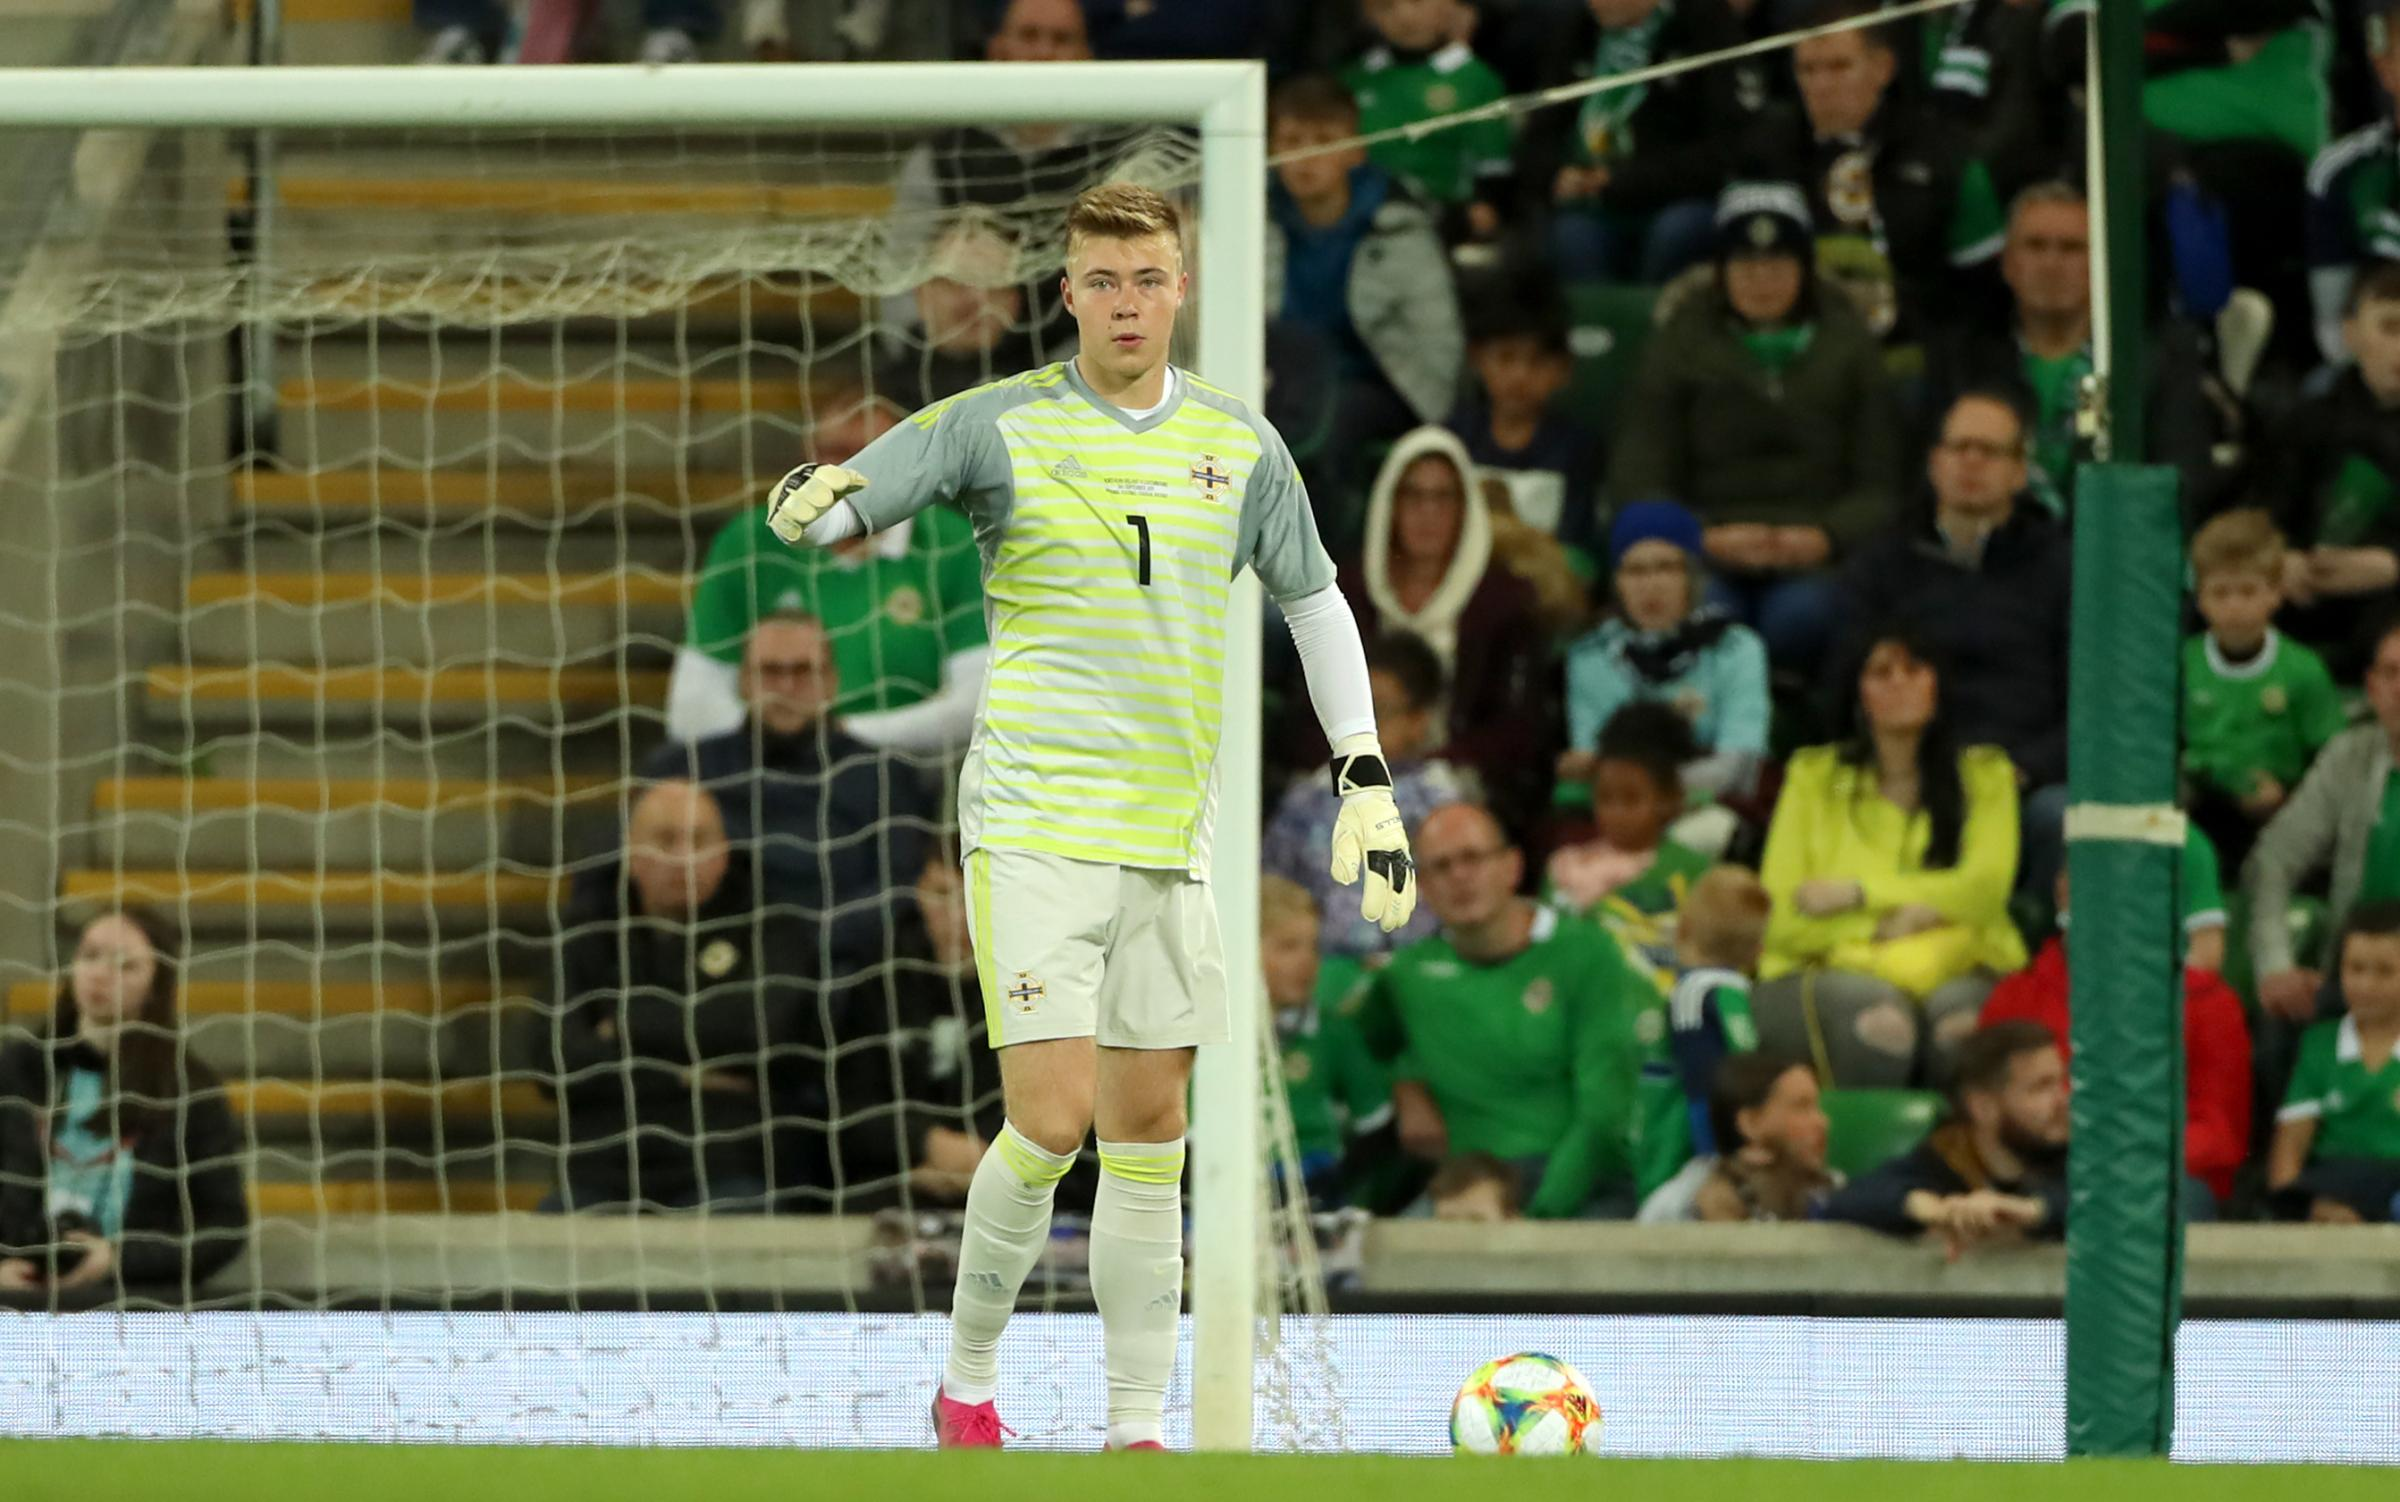 Peacock-Farrell needs football says Northern Ireland boss